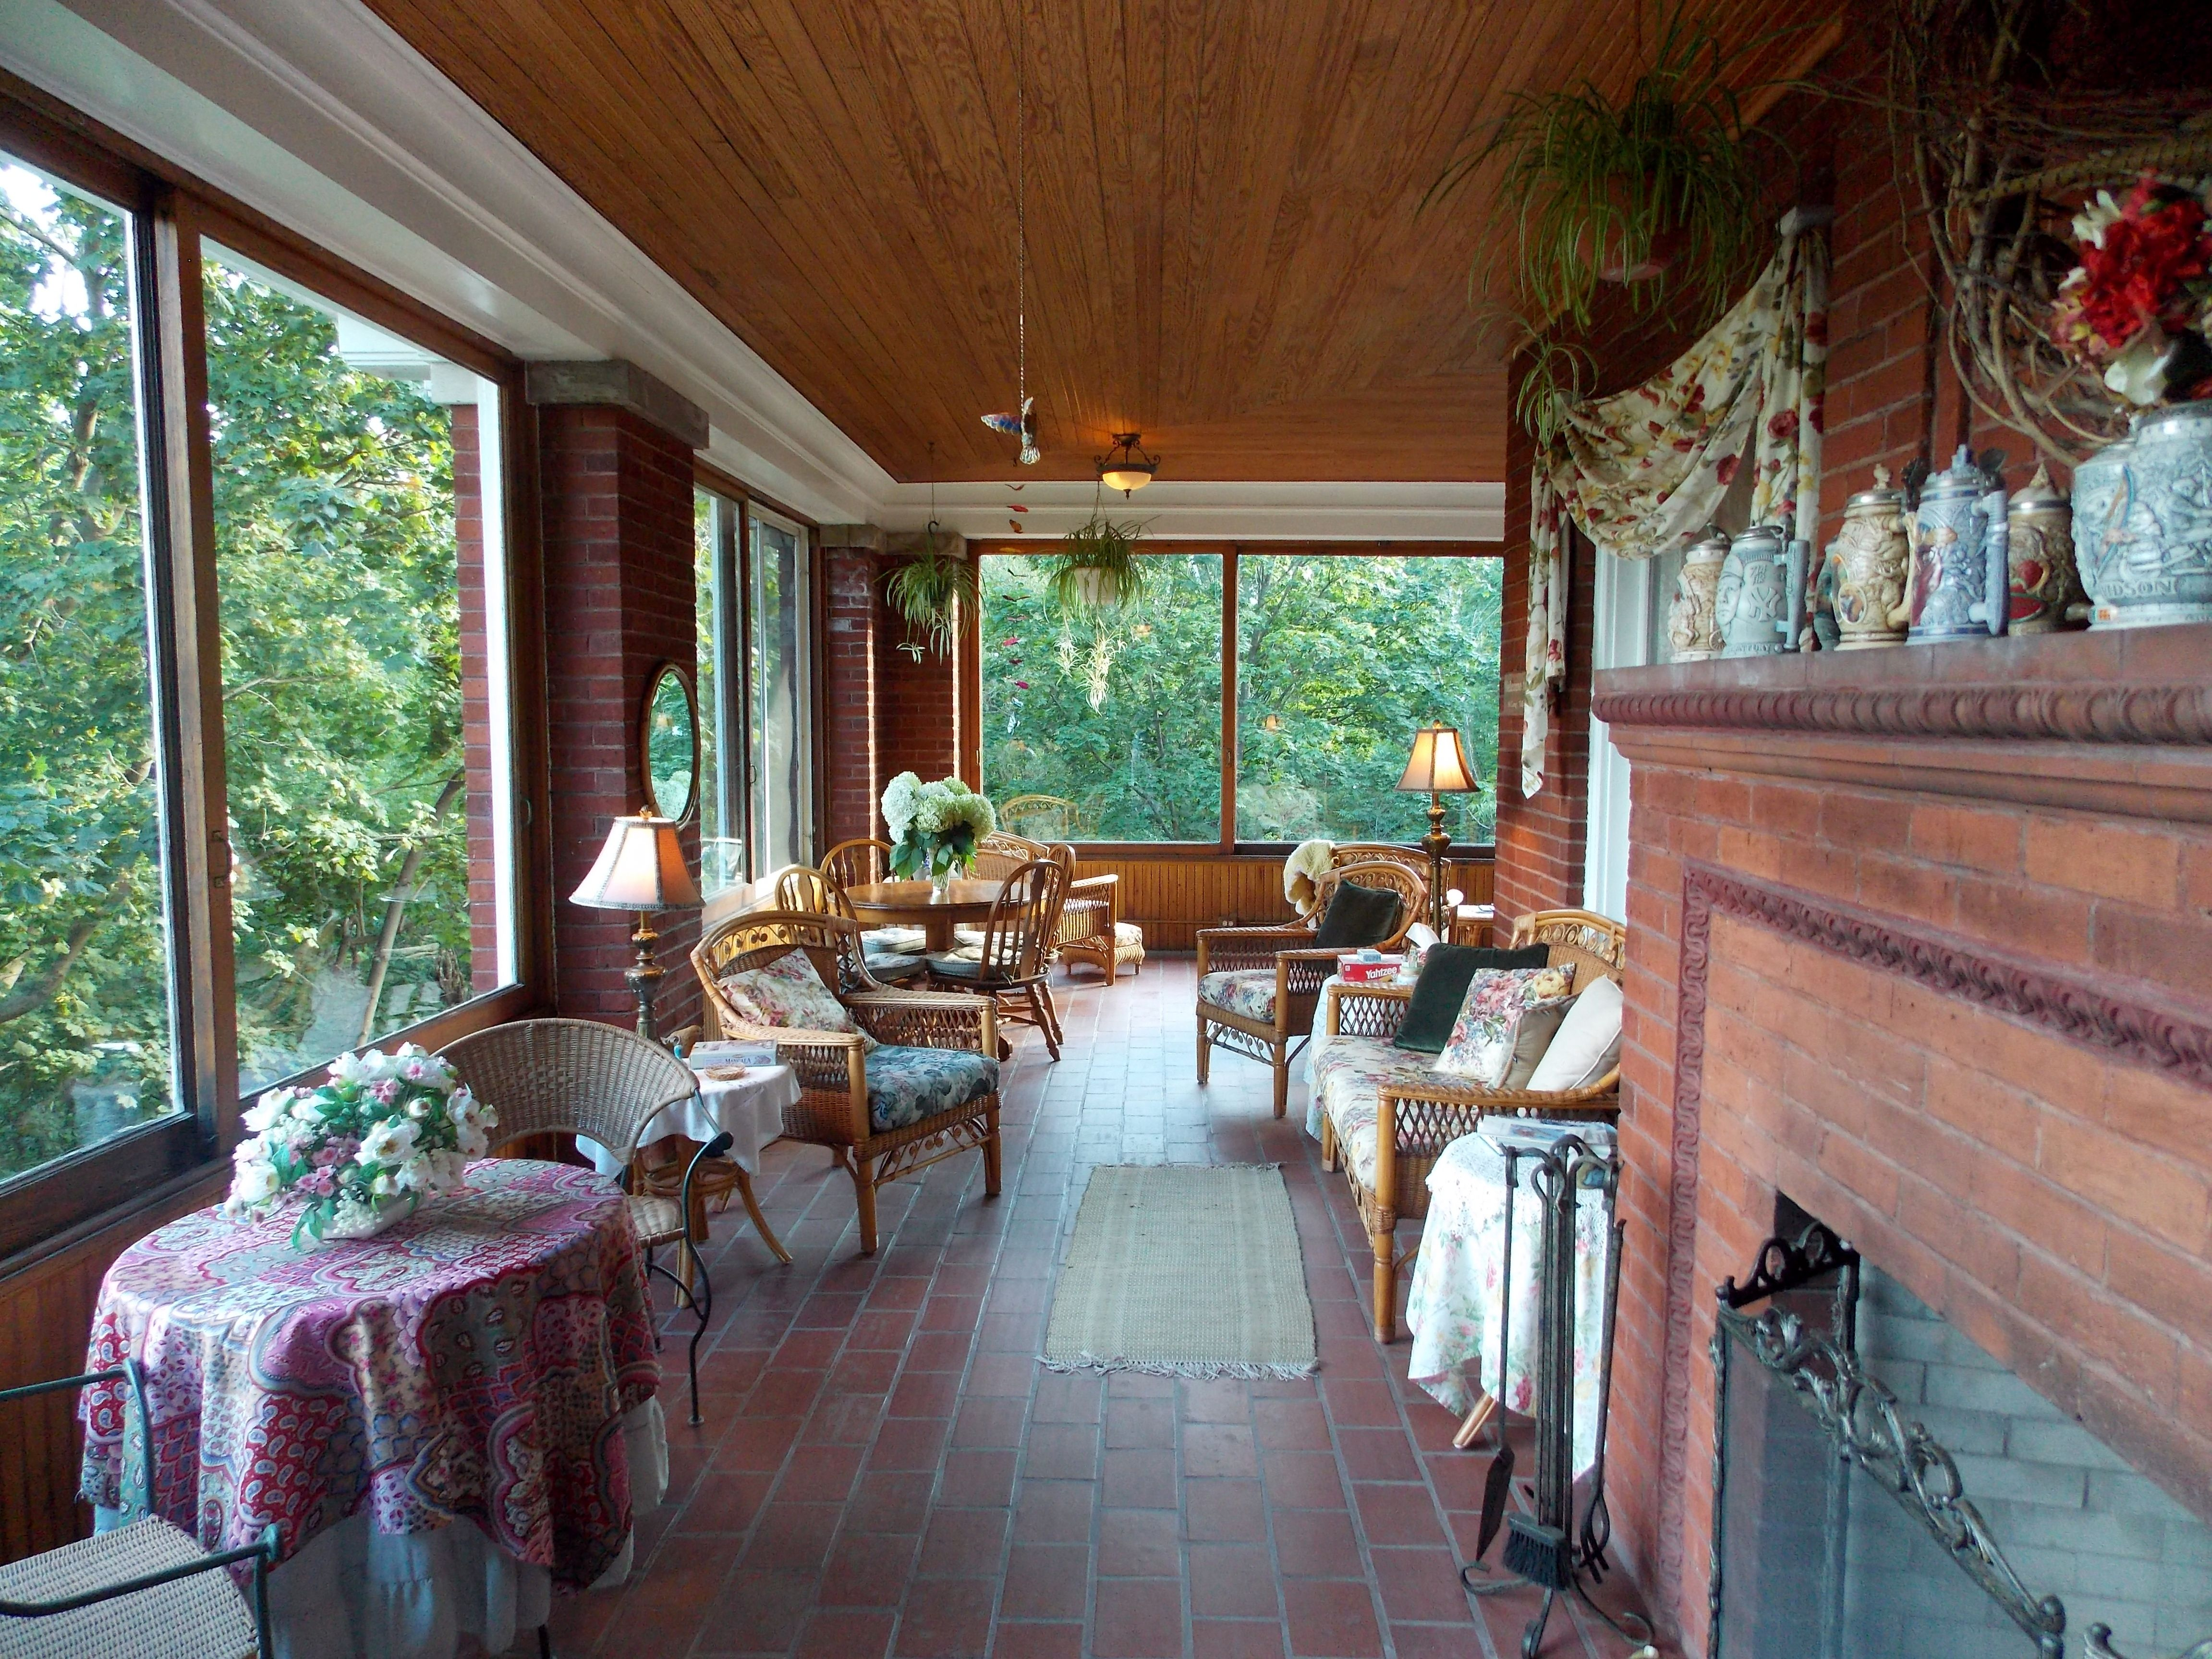 Porch The Firelight Inn on Oregon Creek Bed and